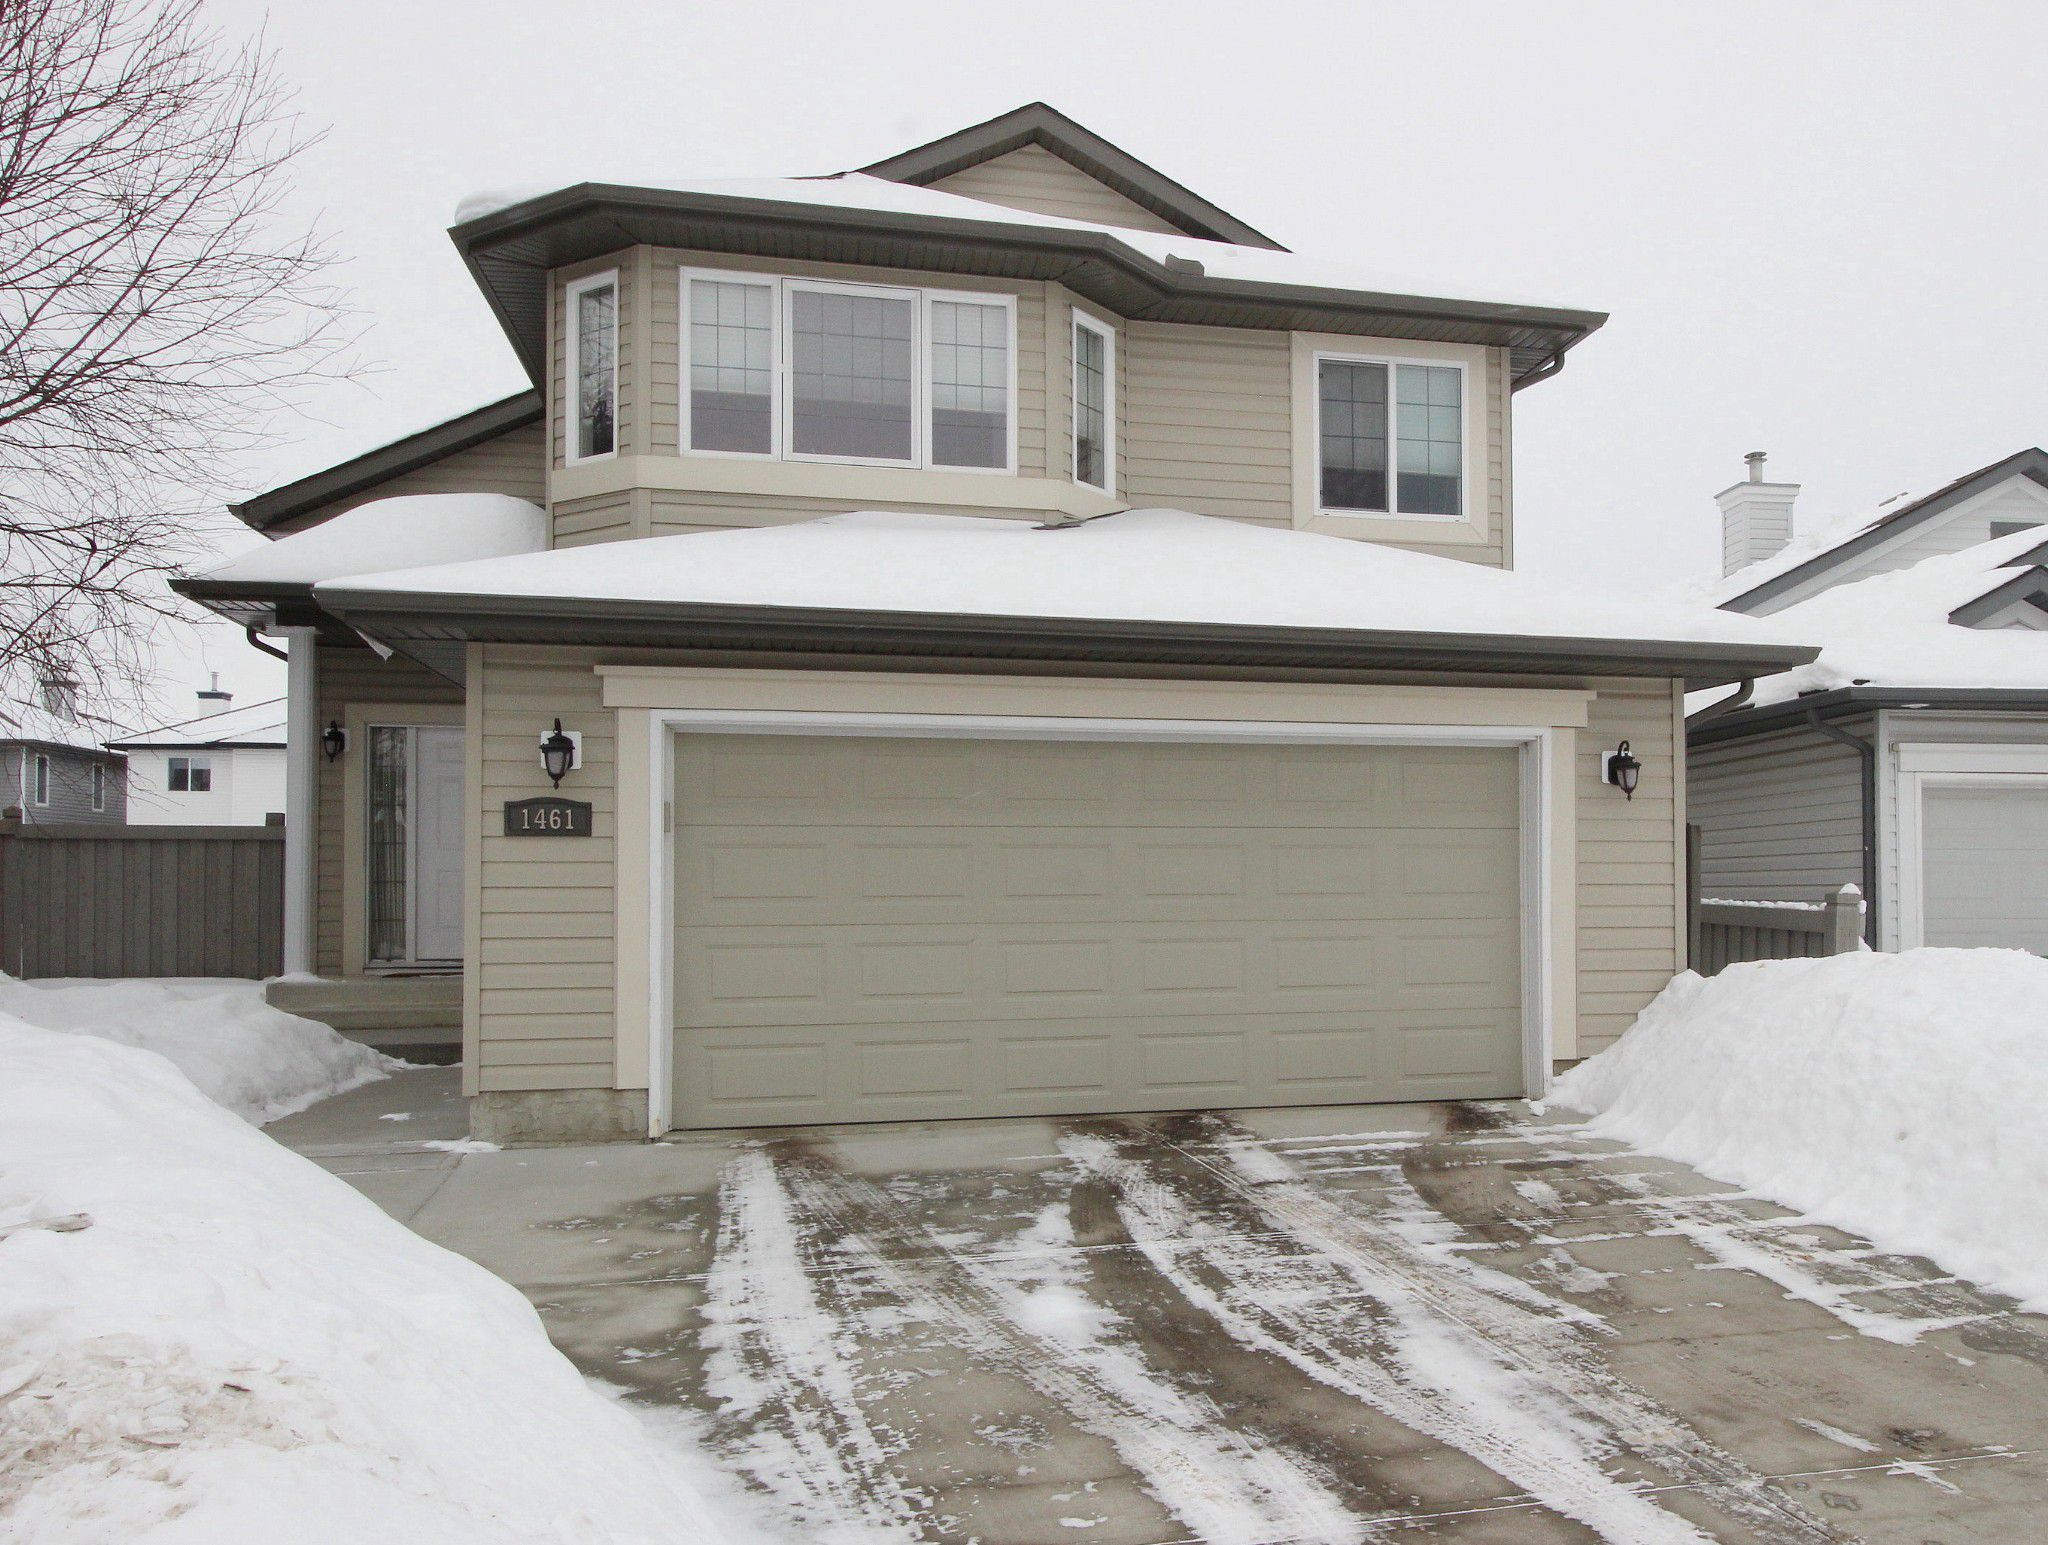 Main Photo: 1461 McMillian Way SW in Edmonton: House for sale